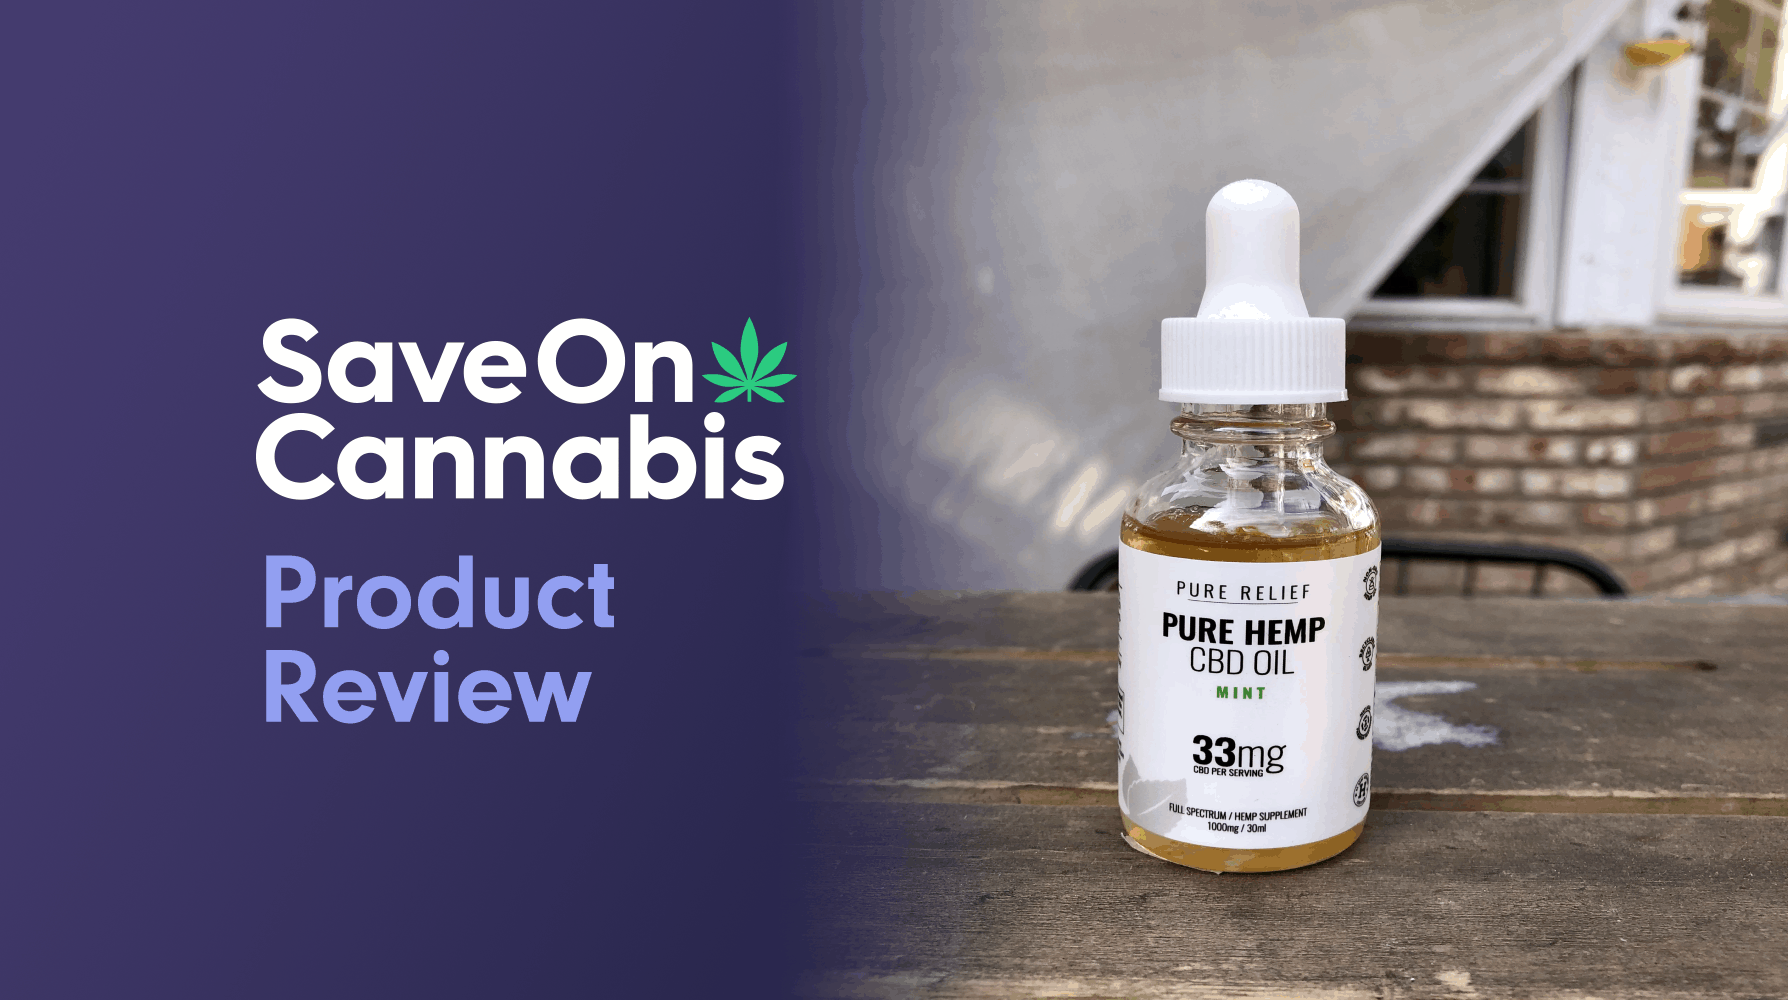 Pure Relief Full Spectrum Mint CBD Oil Save On Cannabis Review Website